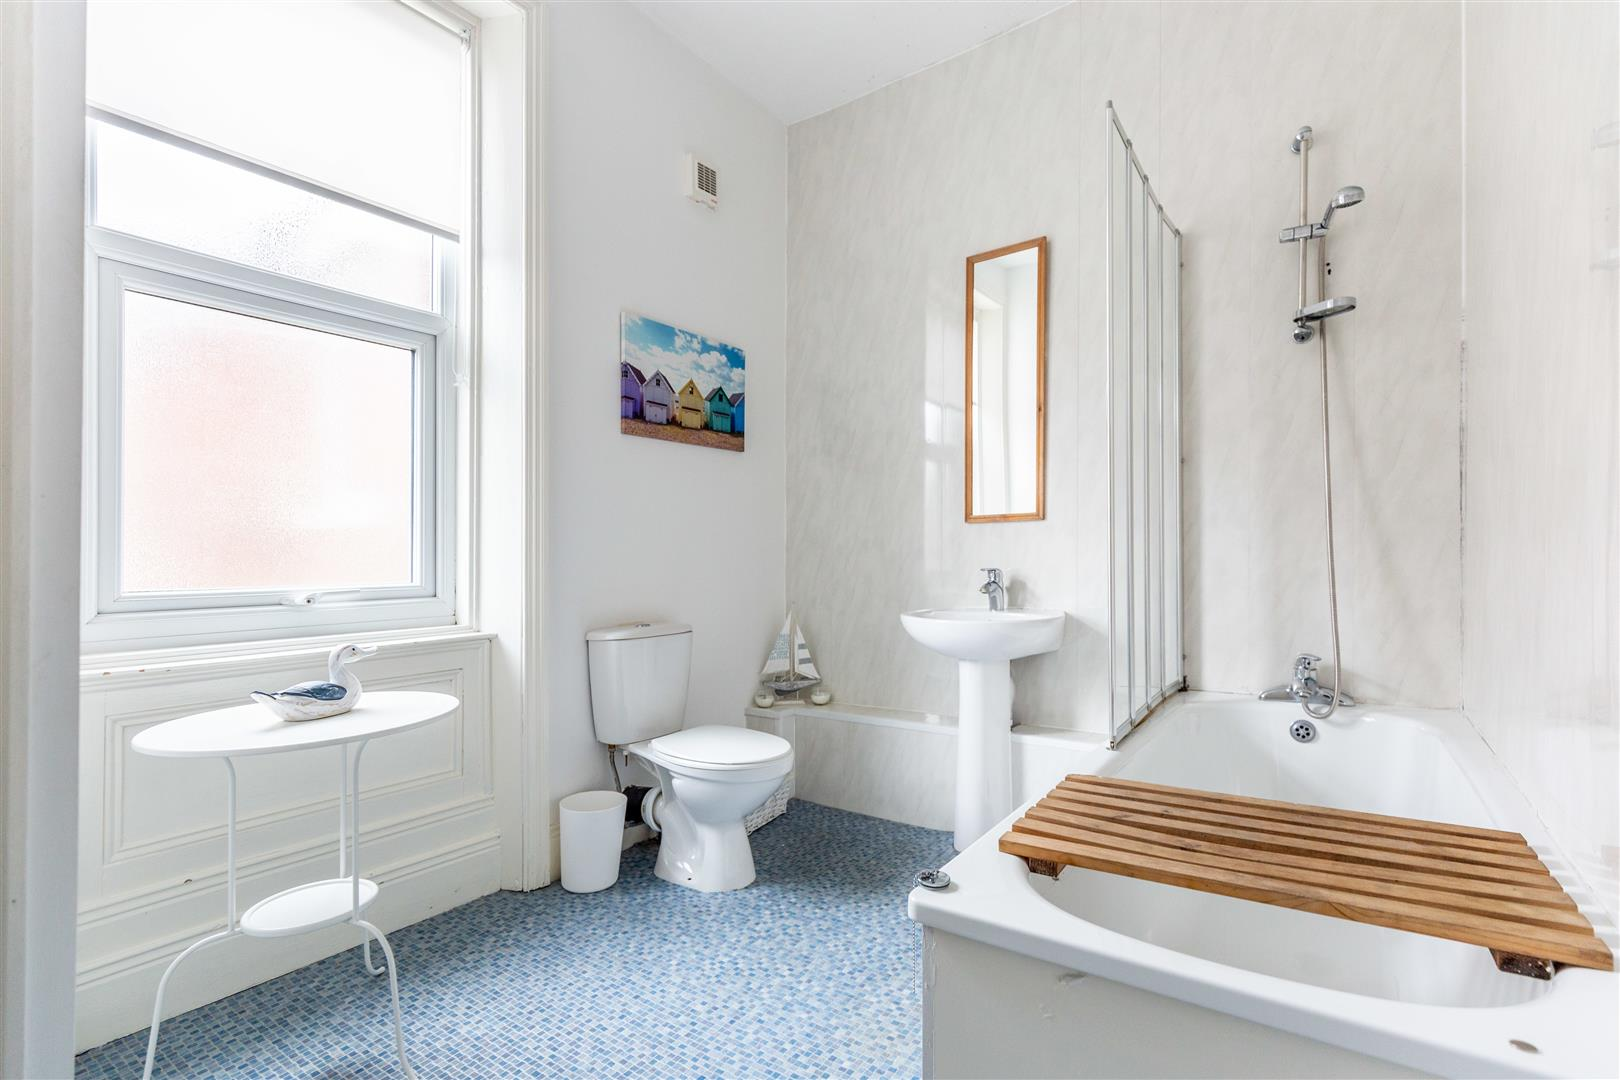 6 bed terraced house to rent in Newcastle Upon Tyne, NE6 5LR 9